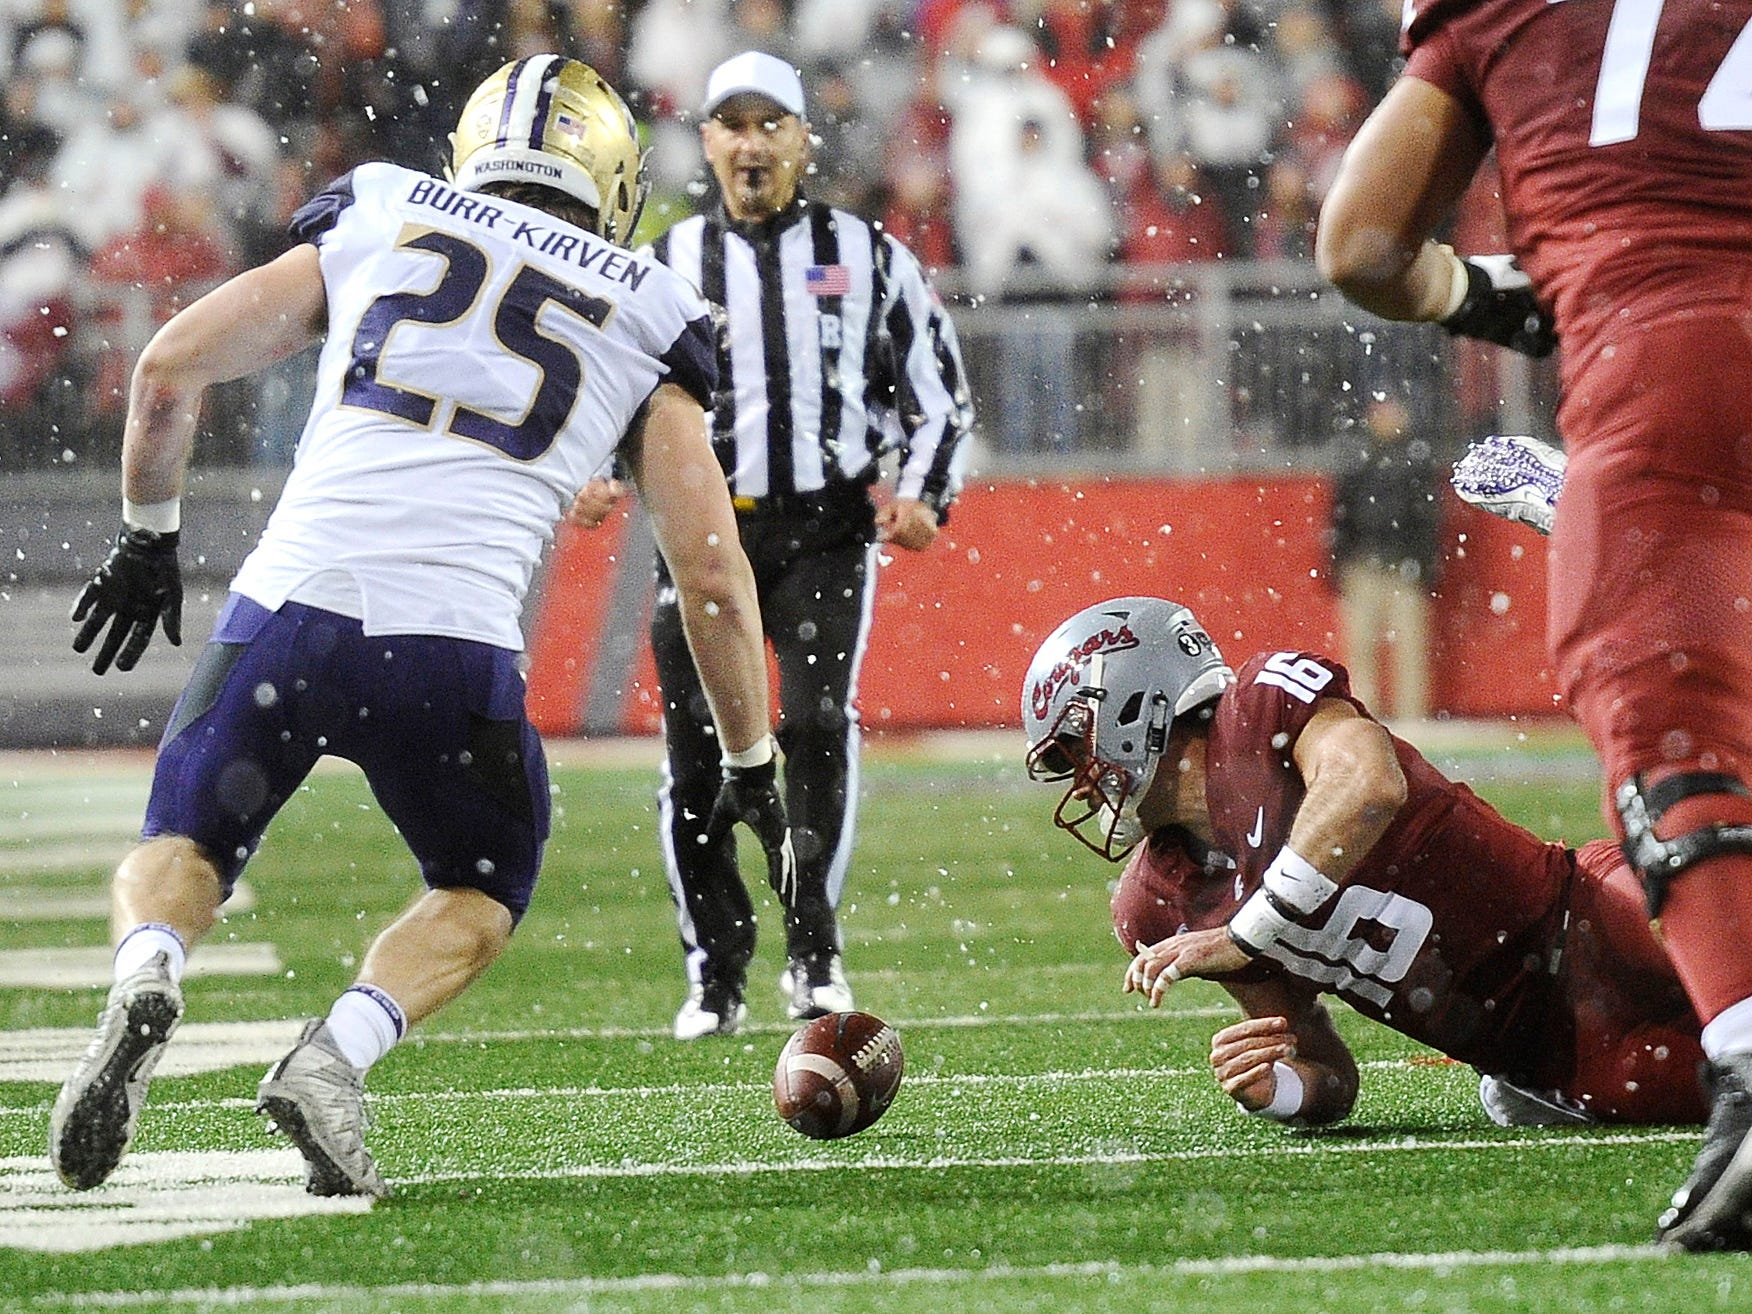 Washington State quarterback Gardner Minshew scrambles for the football after fumbling in the first half against Washington.